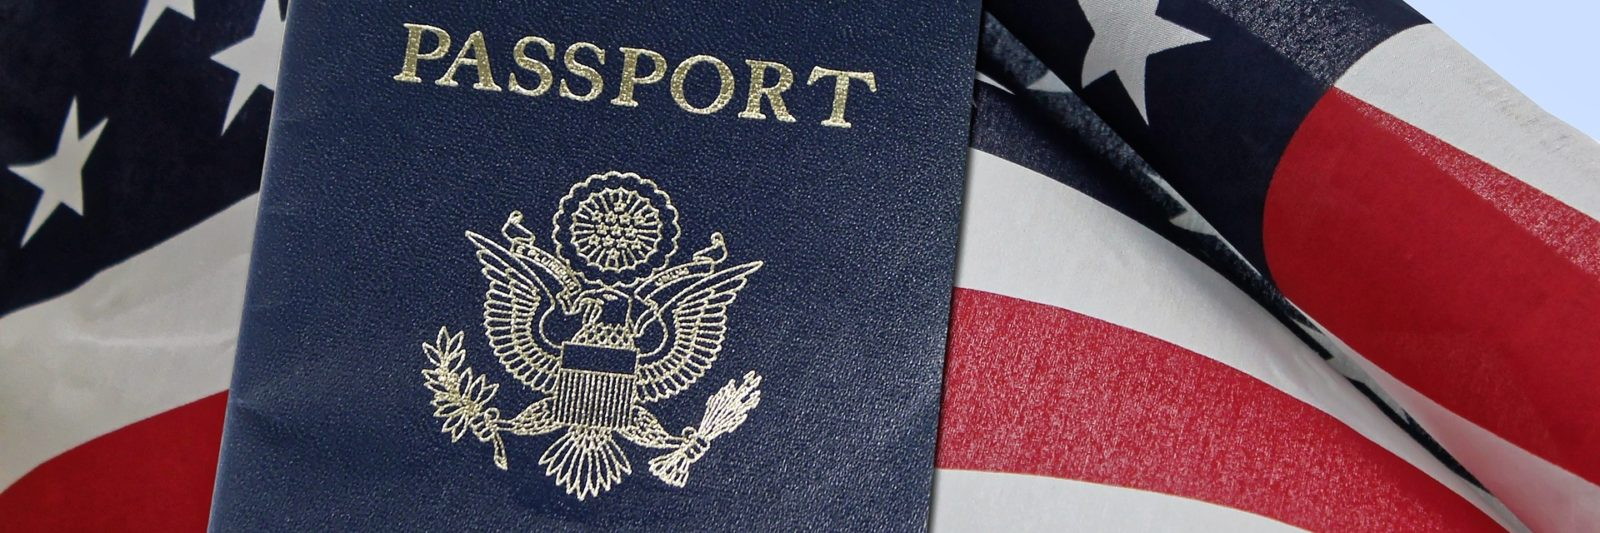 United states flag with passport